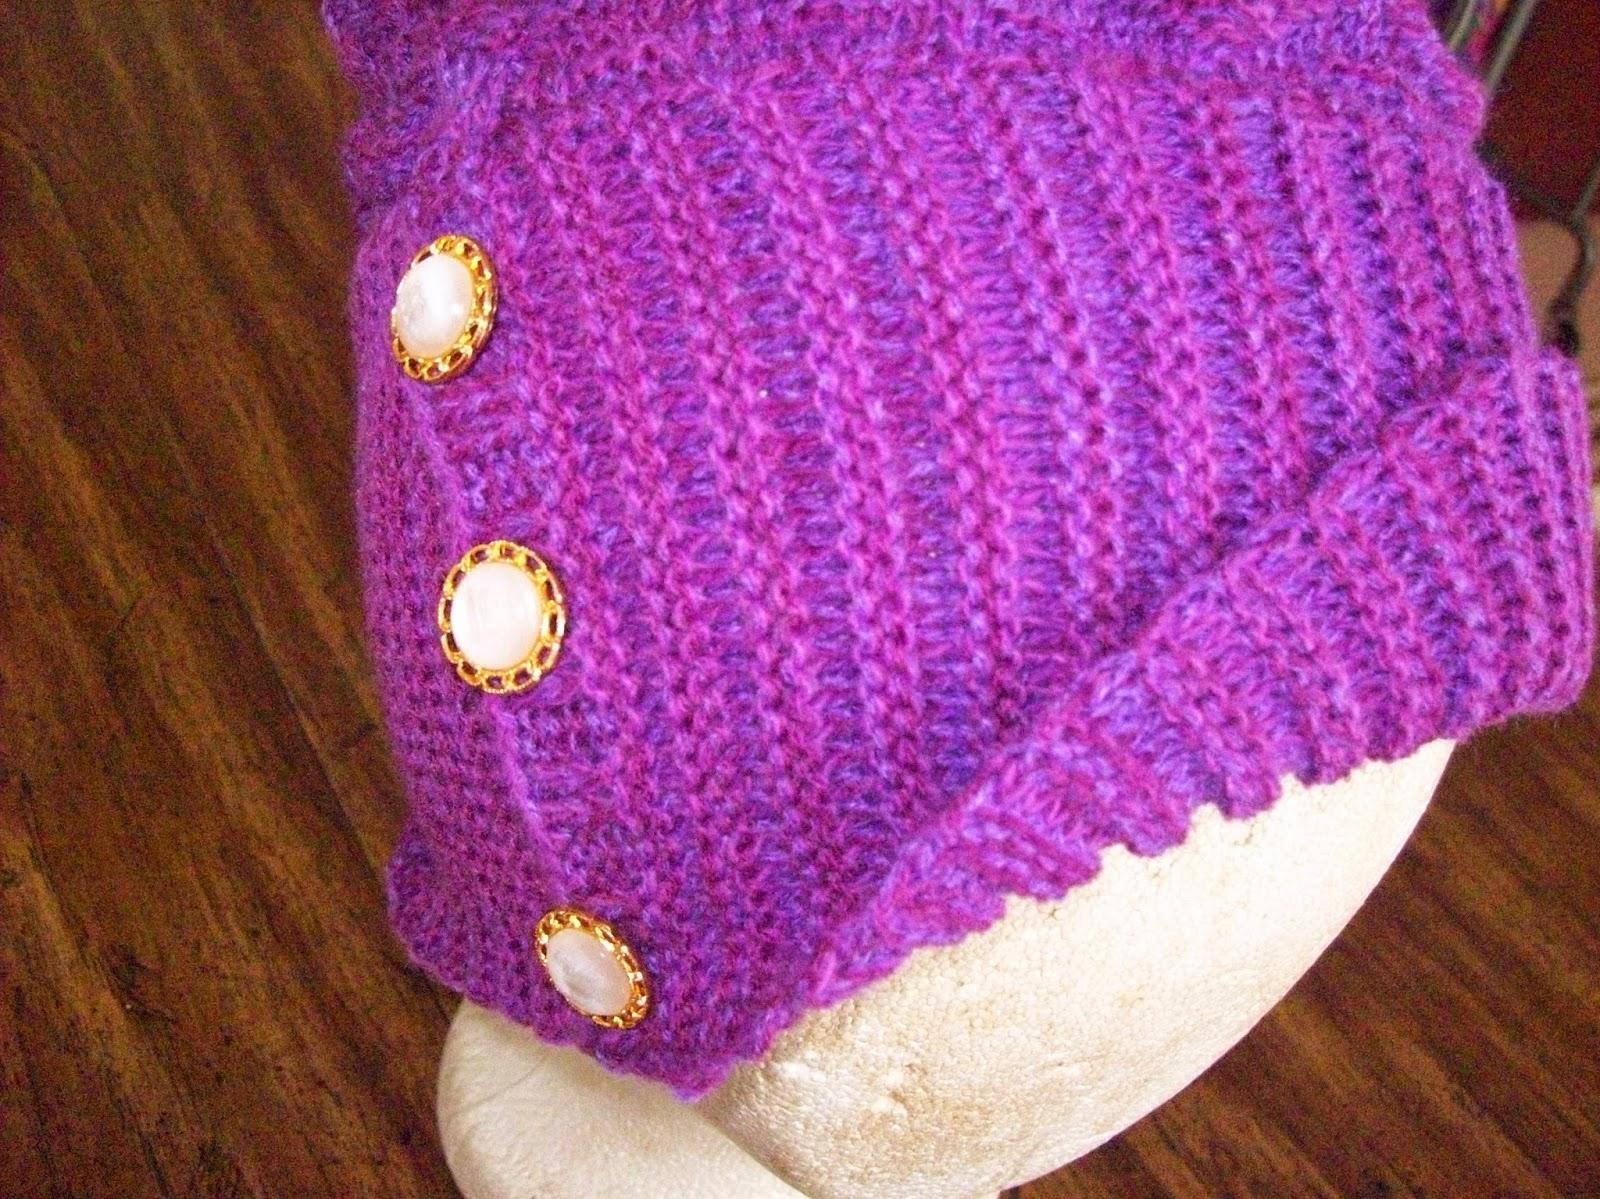 Knitted with 3 strands 1 12 accrylic yarn in 3 different colors mixed  together. I am also knitting one in 2 17 acrylic knit 2 strands. Pattern  available at ... b9f9ace5f71